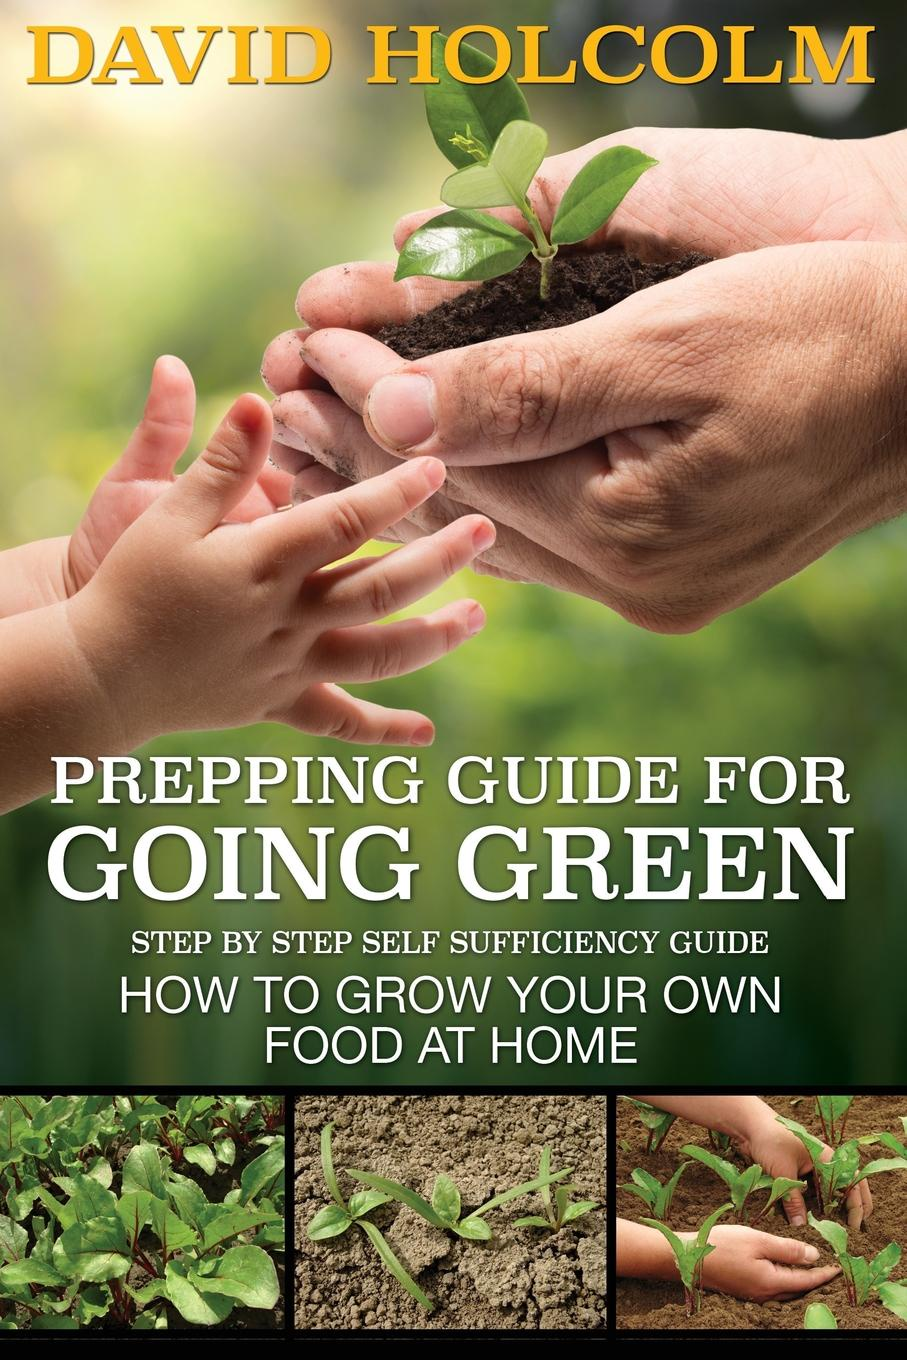 David Holcolm Prepping Guide for Going Green. Step by Step Self Sufficiency Guide evelyn underhill the complete christian mystic a practical step by step guide for awakening to the presence of god